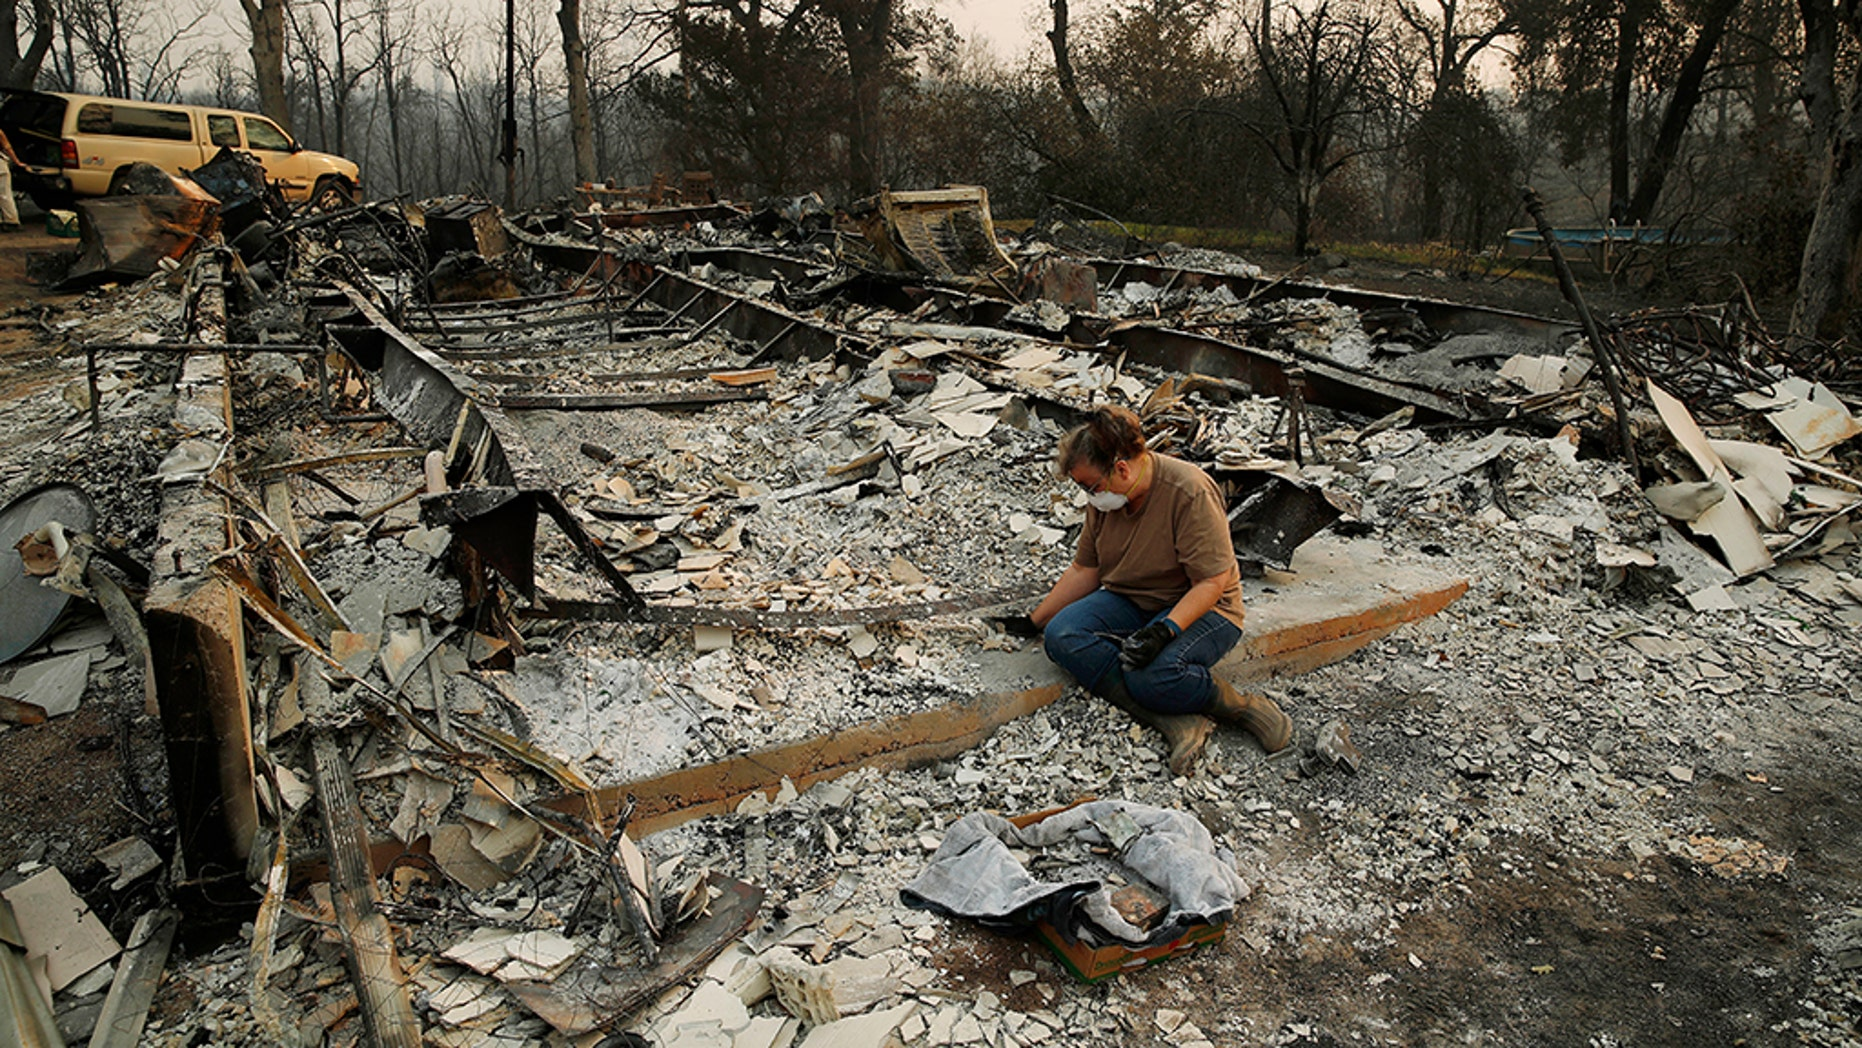 Kim Burns sifting through the charred rubble of her home burned in the Carr Fire, Sunday, Aug. 12, 2018, in Redding, Calif.